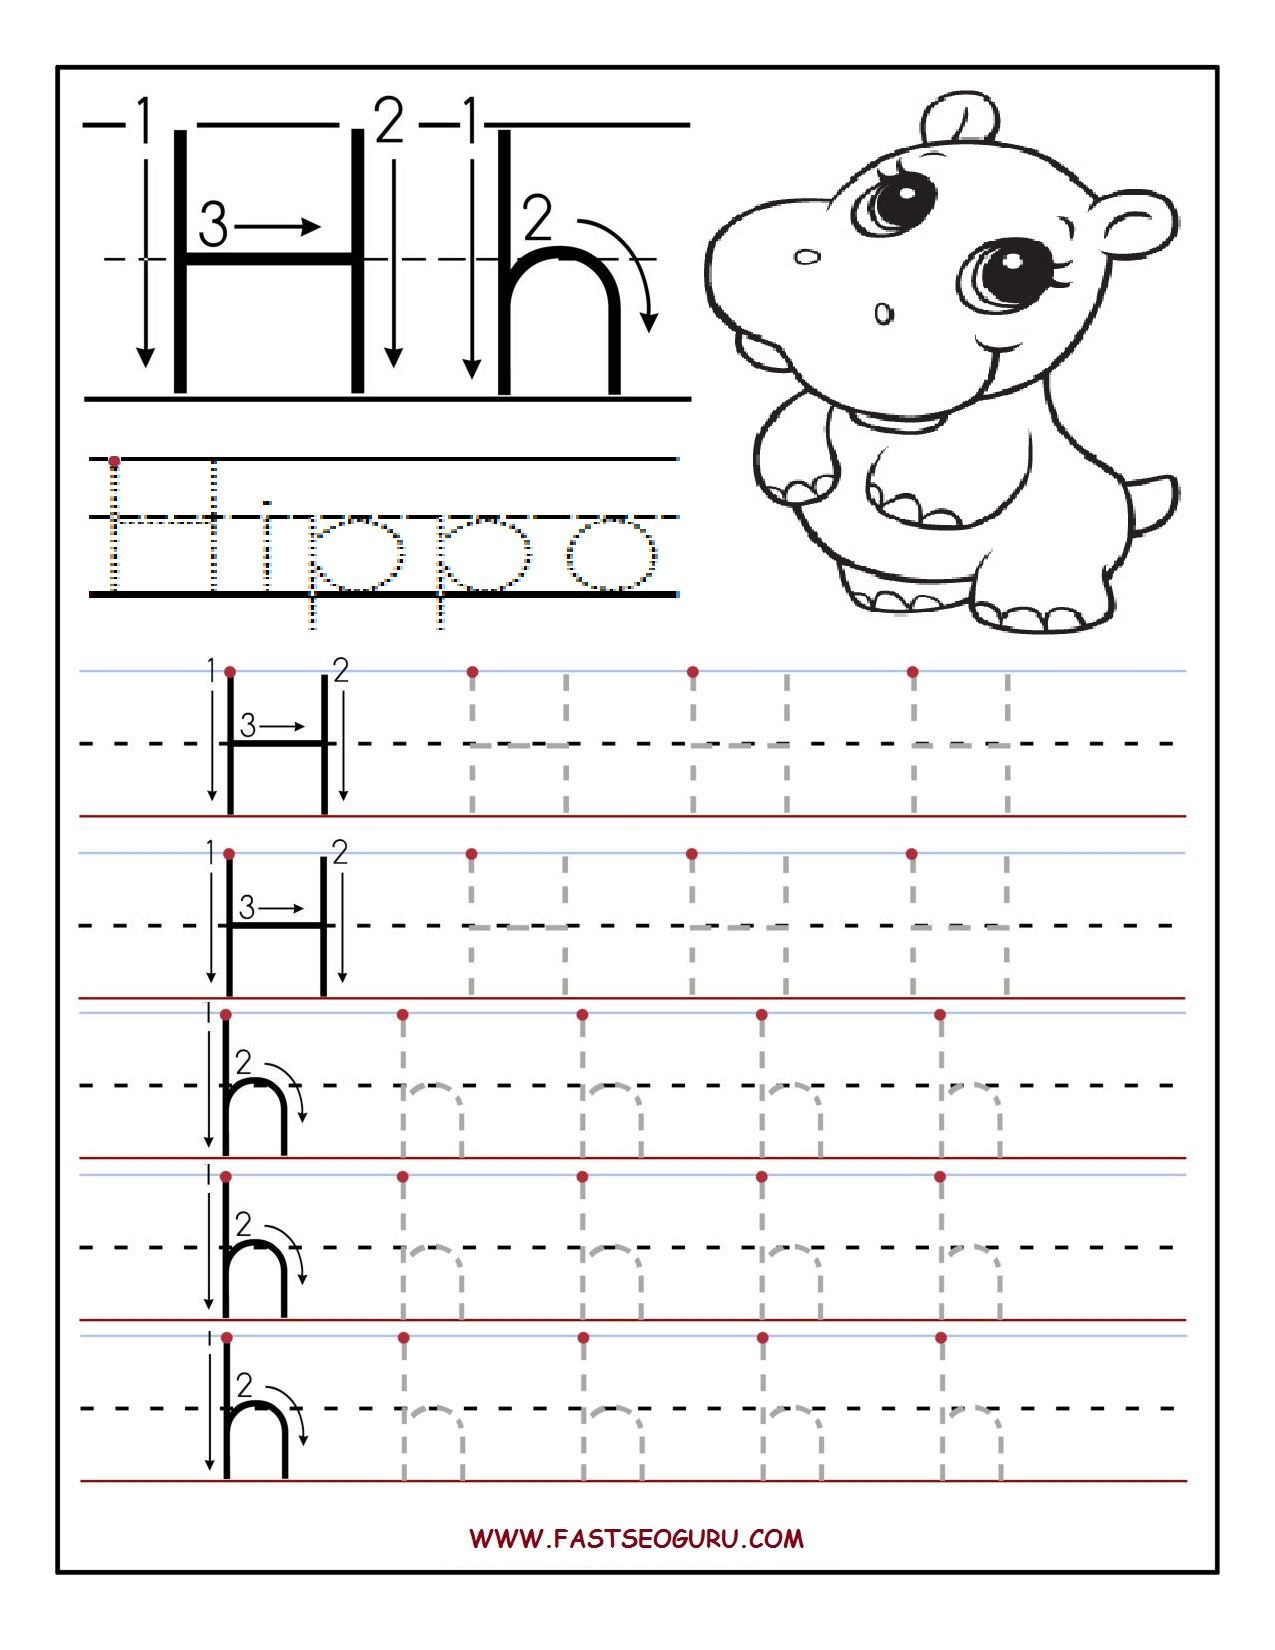 Tracing Letters H Worksheet. | #finemotorskills #preschooler